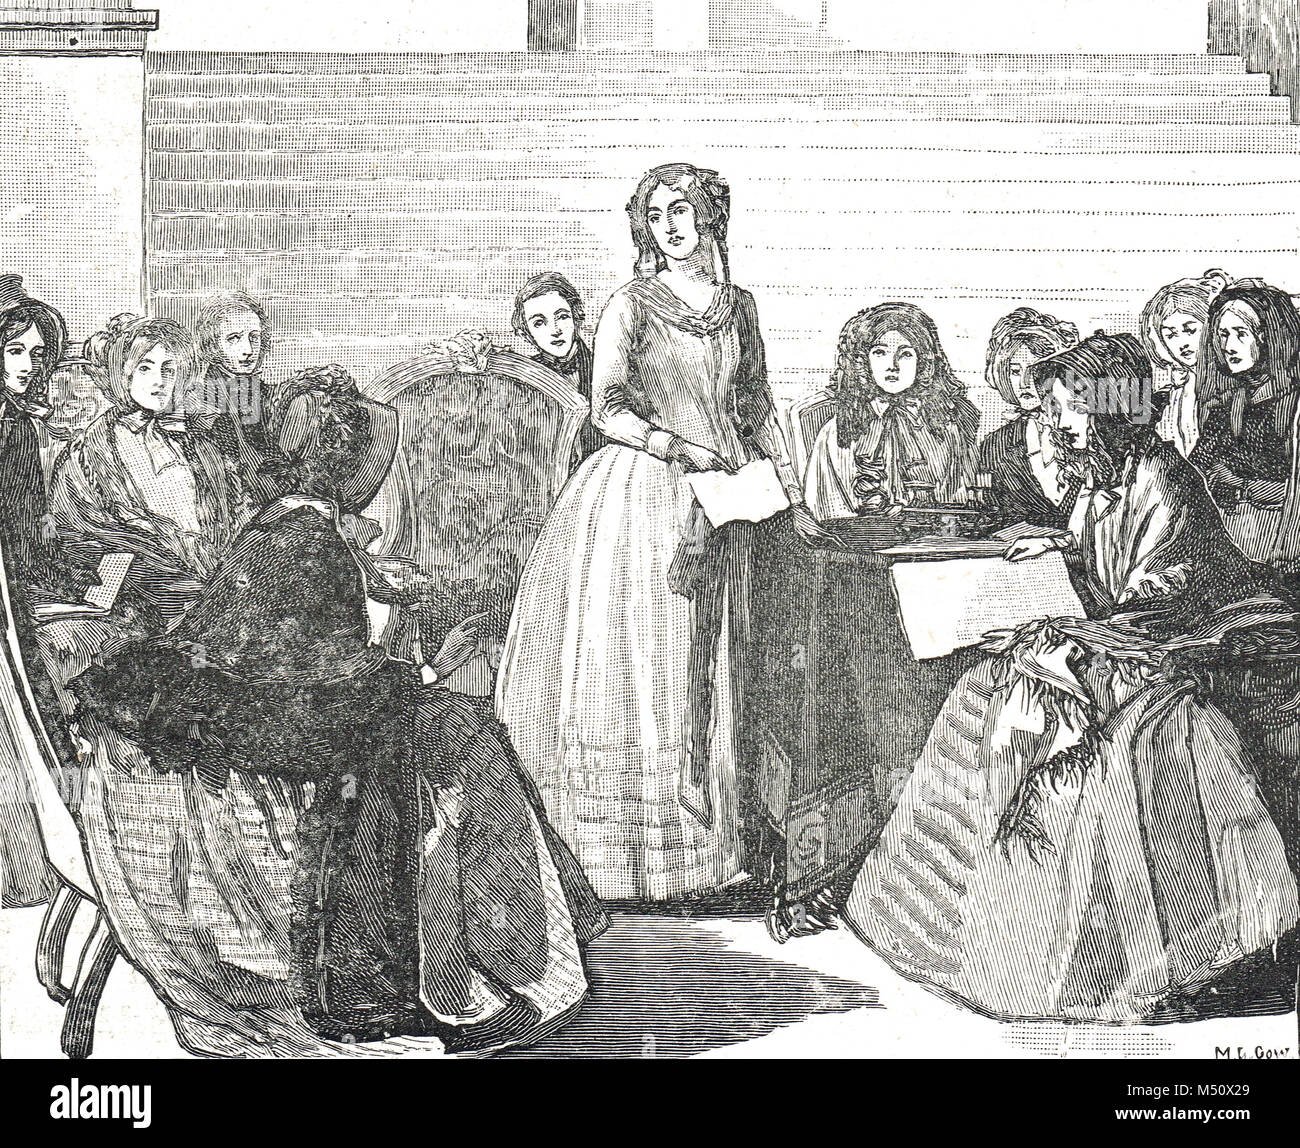 Meeting of the Ladies committee in aid of the Great exhibition of 1851 at Stafford house - Stock Image